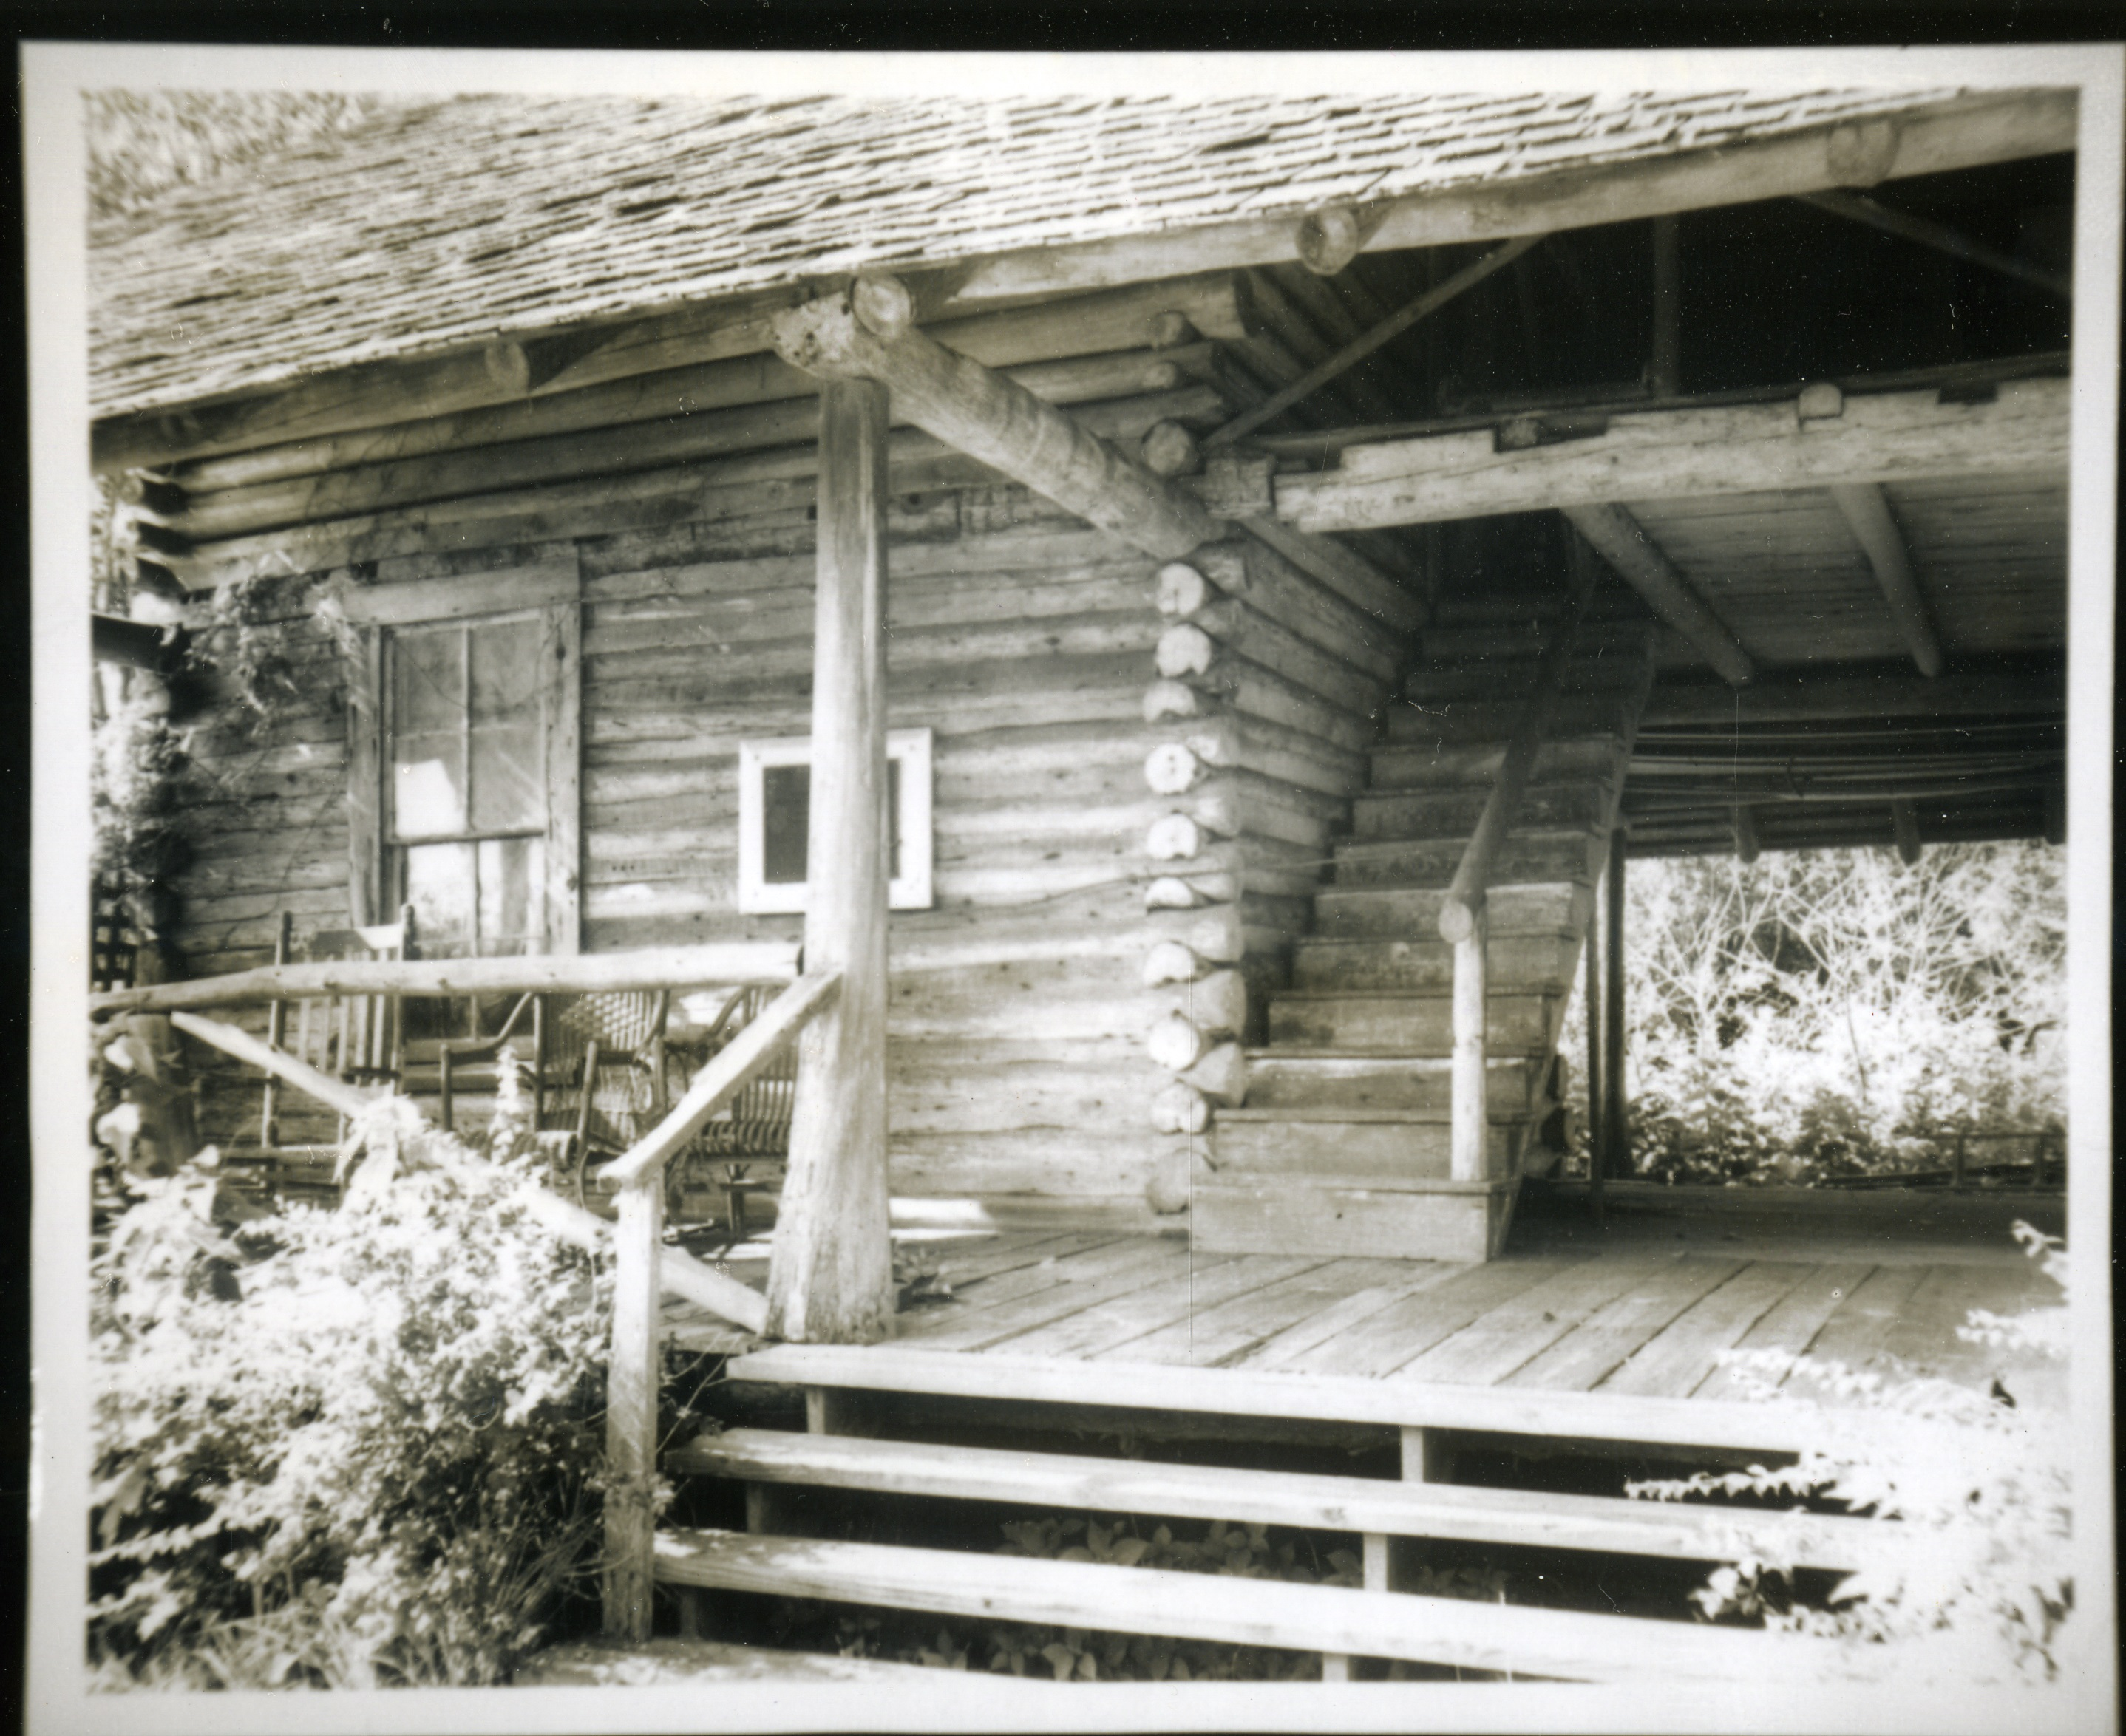 View of the porch of the McMullen-Coachman Log Cabin, Clearwater, Florida, circa 1966.